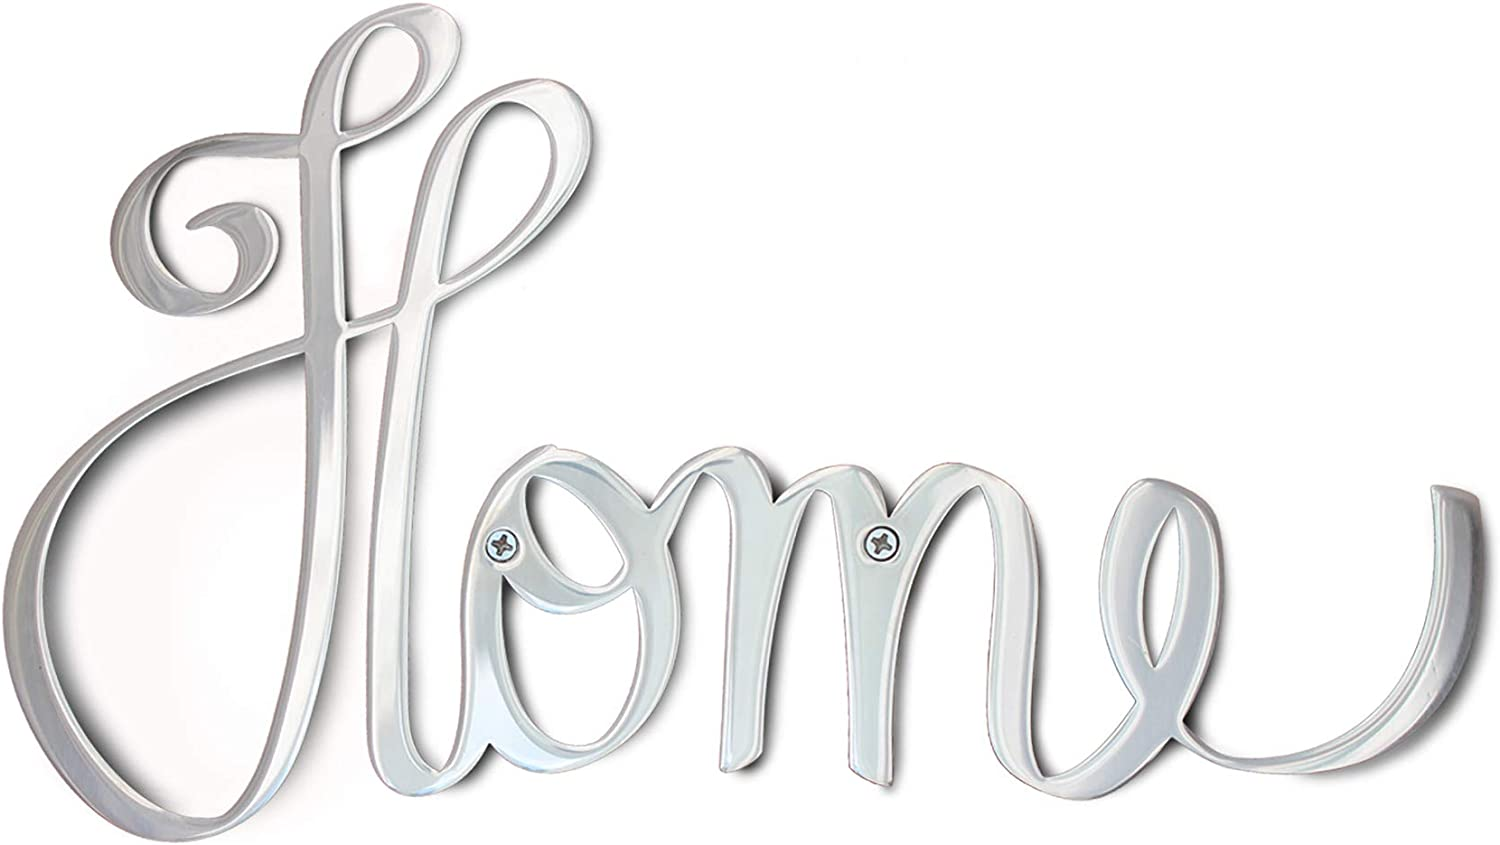 """Way Of Hearts Metal Home Sign, Hand Polished Stainless Steel Metal Wall Decor, Rustic Farmhouse Wall Decorations for Living Room, Vintage Metal Cut Out Wall Art, Silver, 10""""?6.1""""?0.1"""